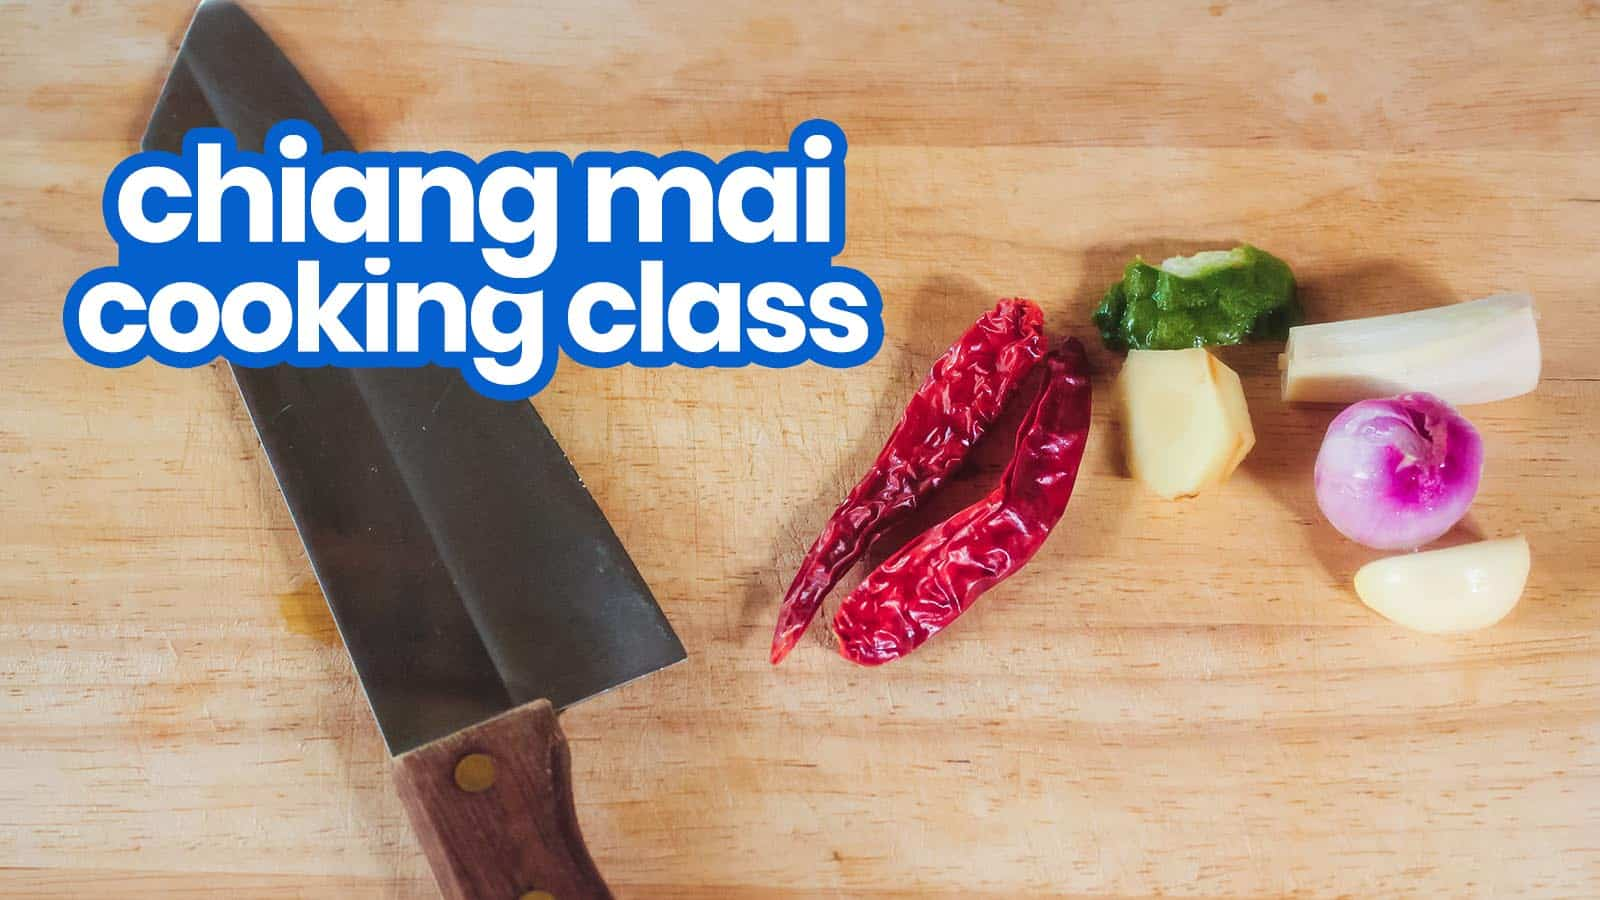 THAI FARM COOKING SCHOOL: Hot and Spicy Lessons in Chiang Mai